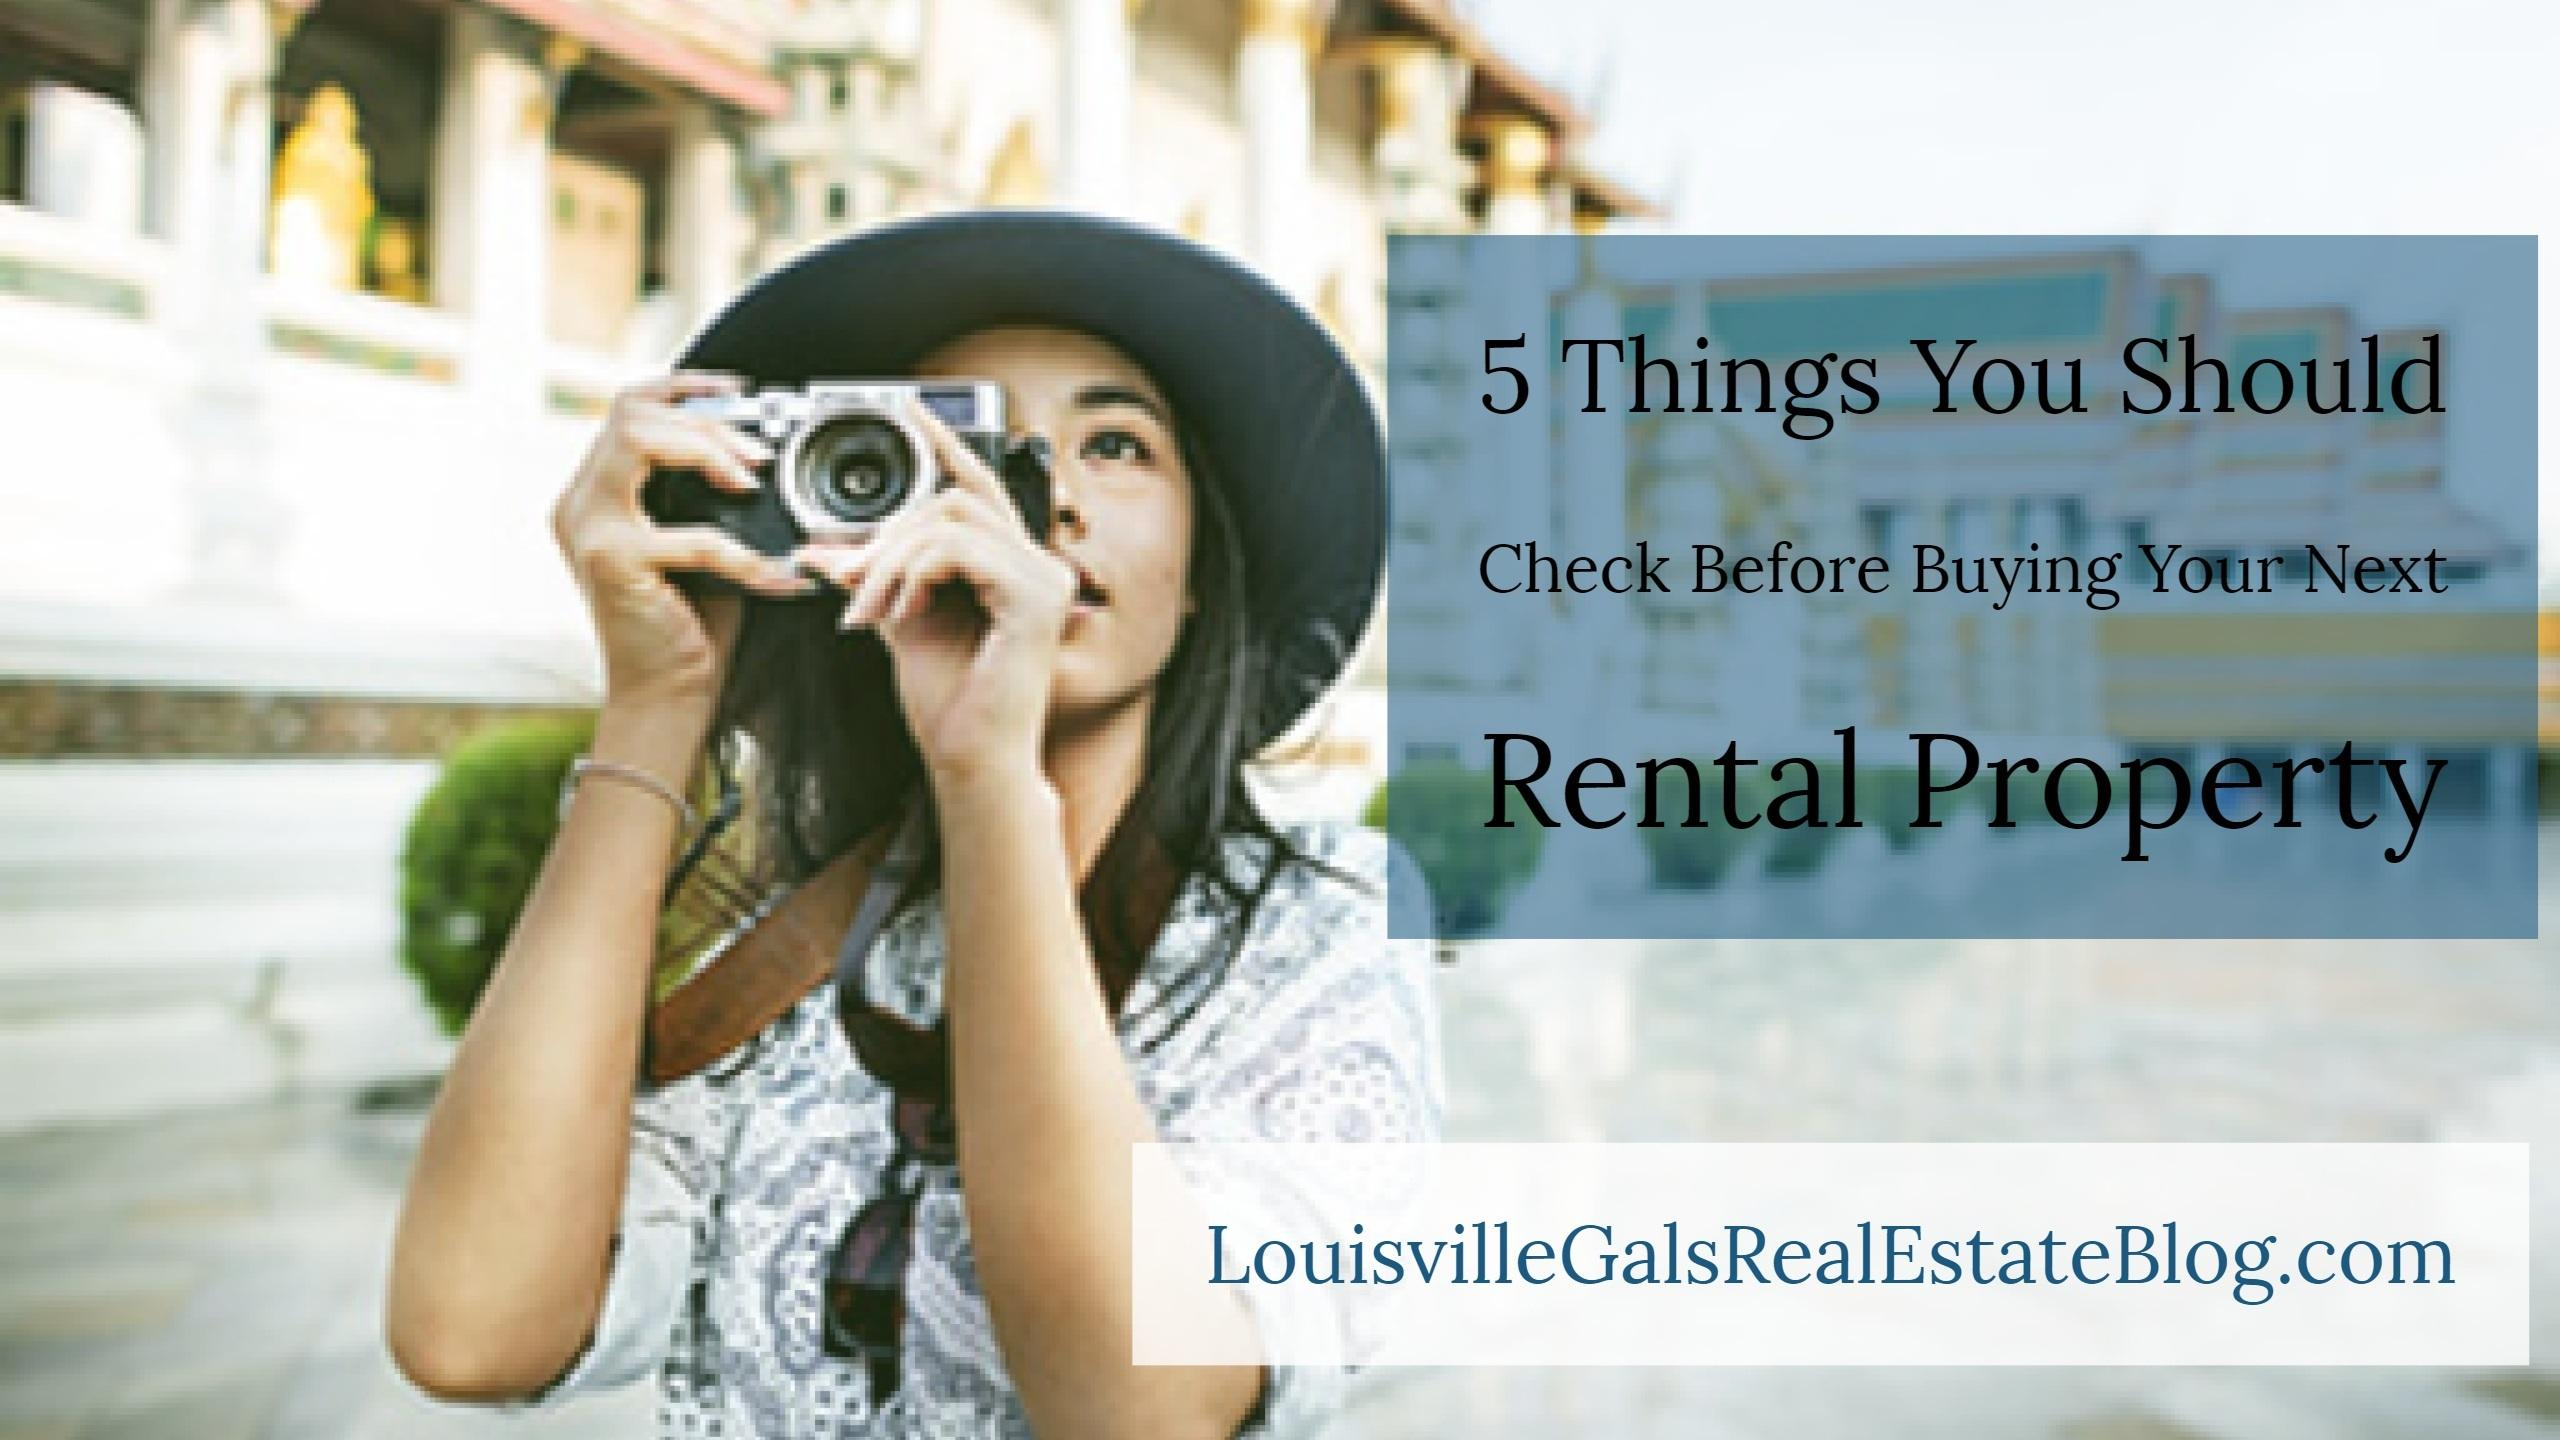 5 Things You Should Check Before Buying Your Next Rental Property